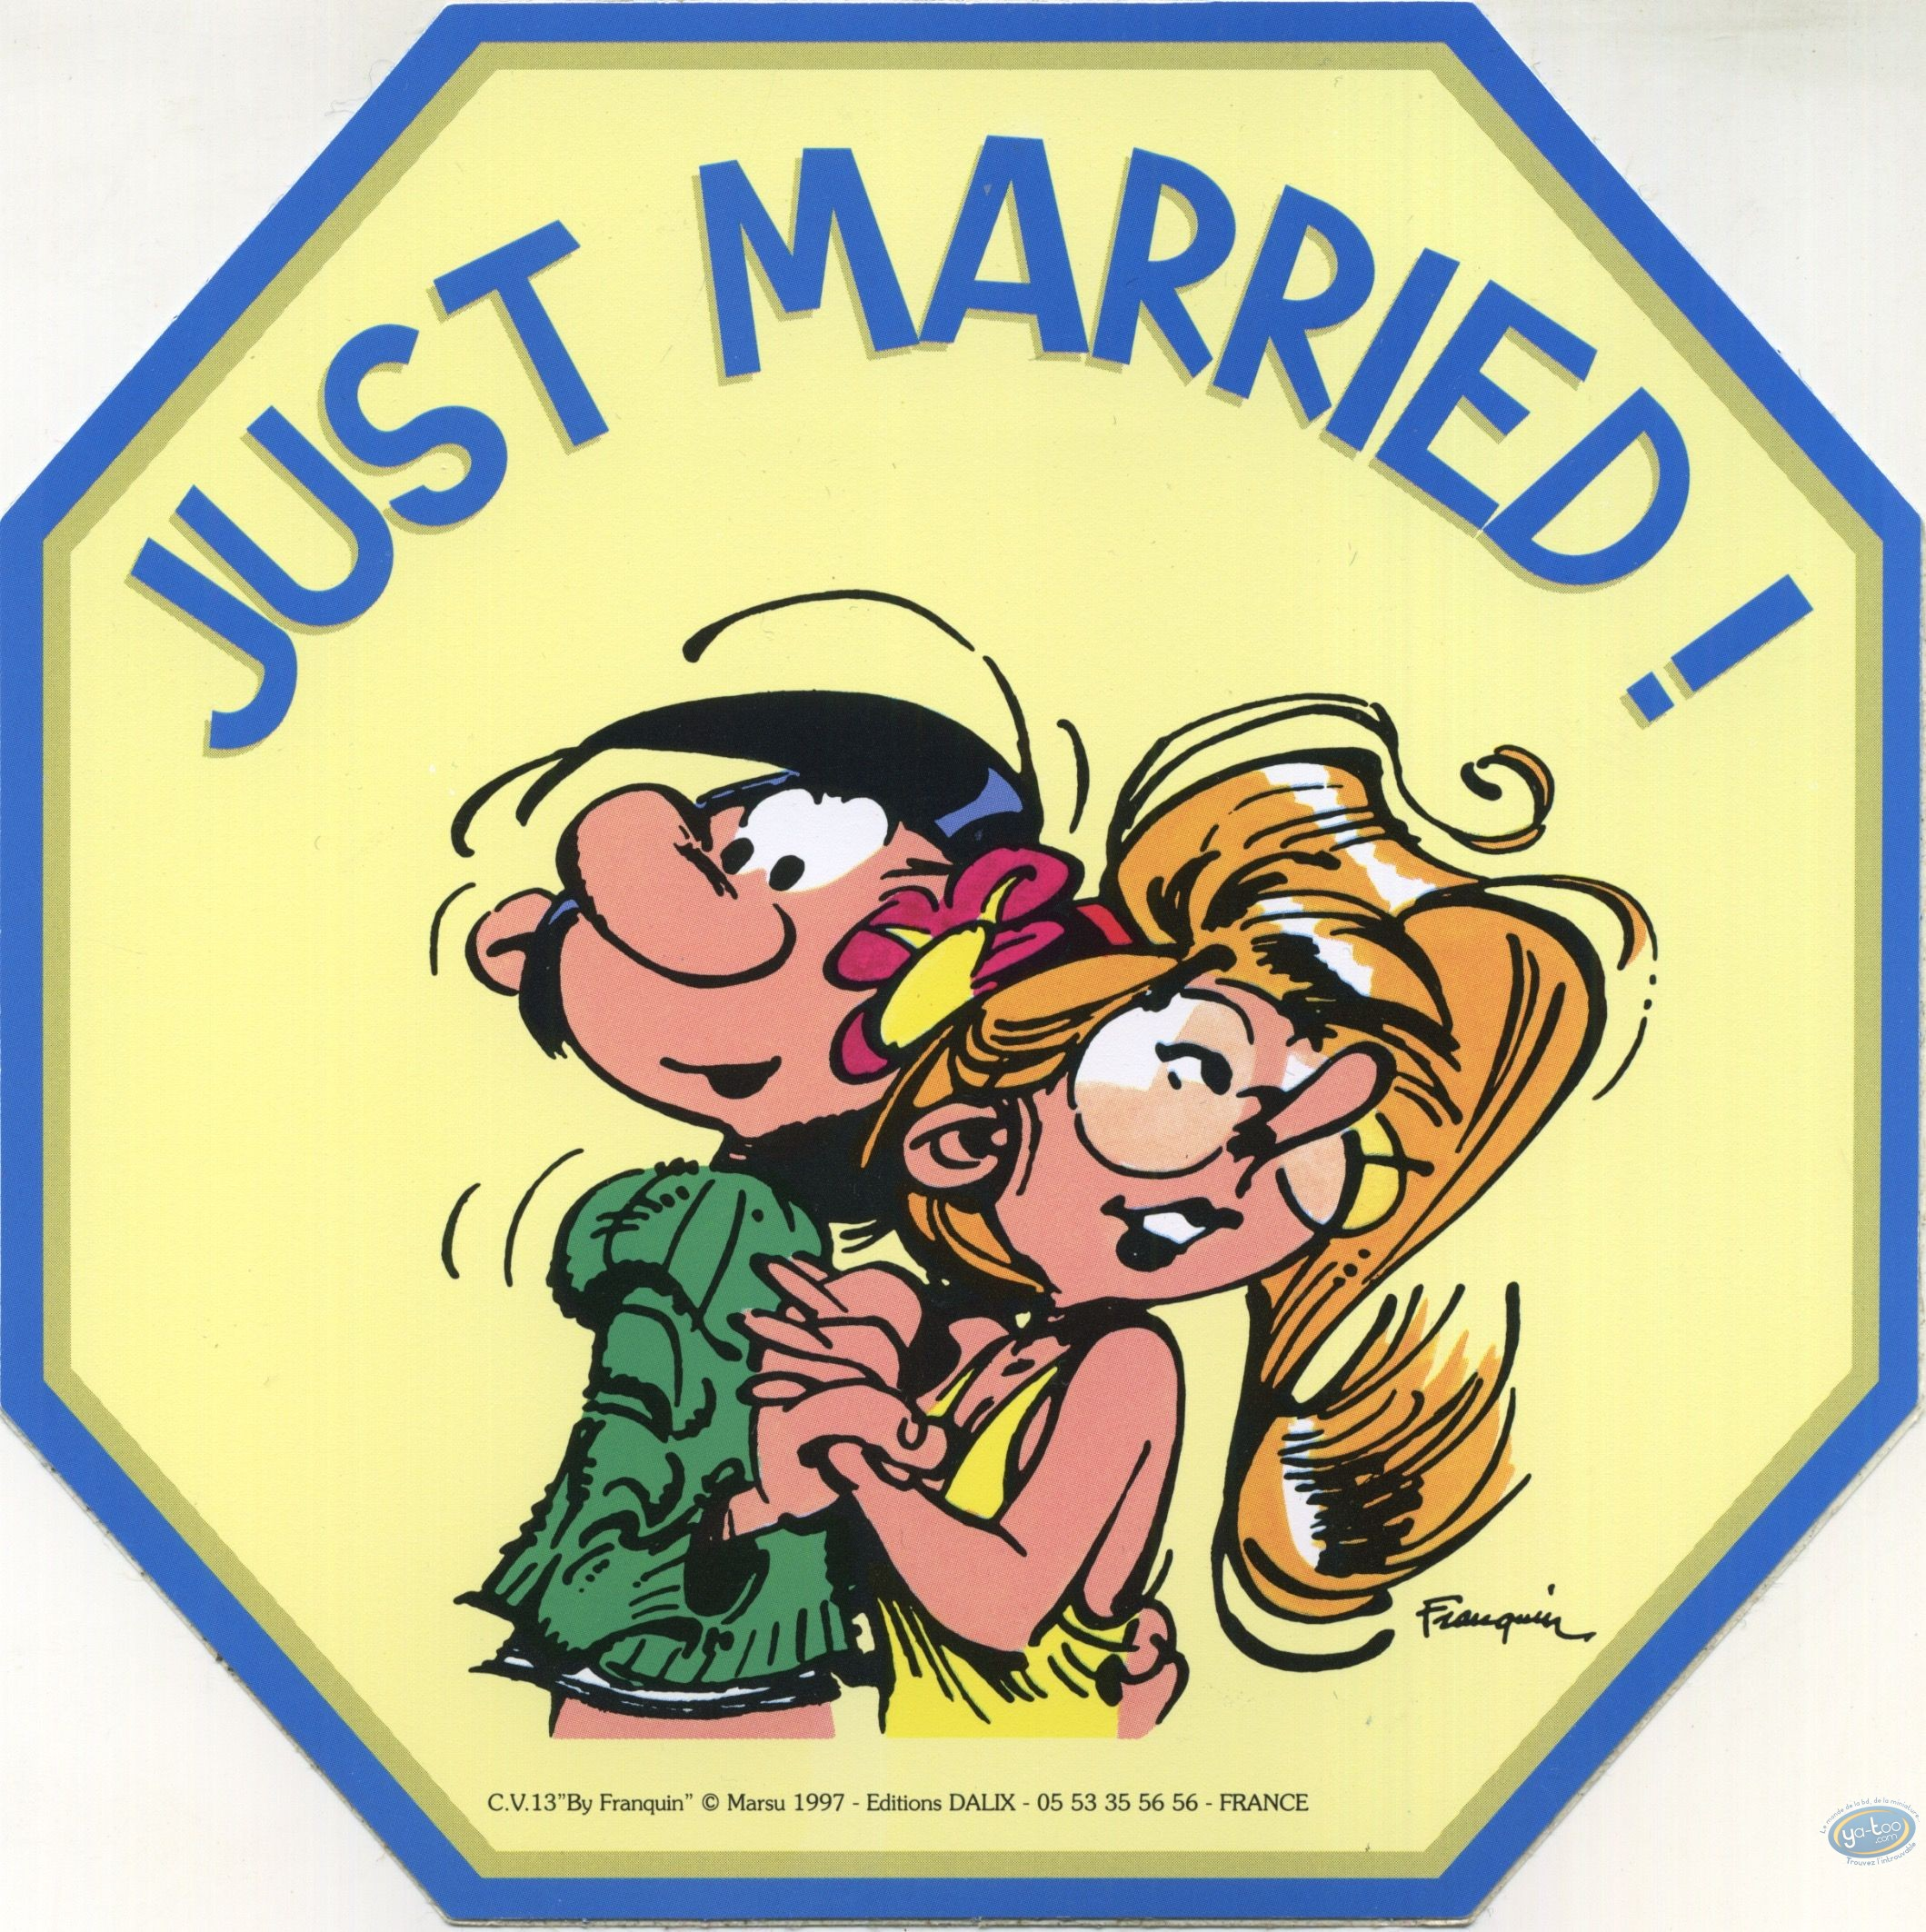 Sticker, Gaston Lagaffe : Just married!